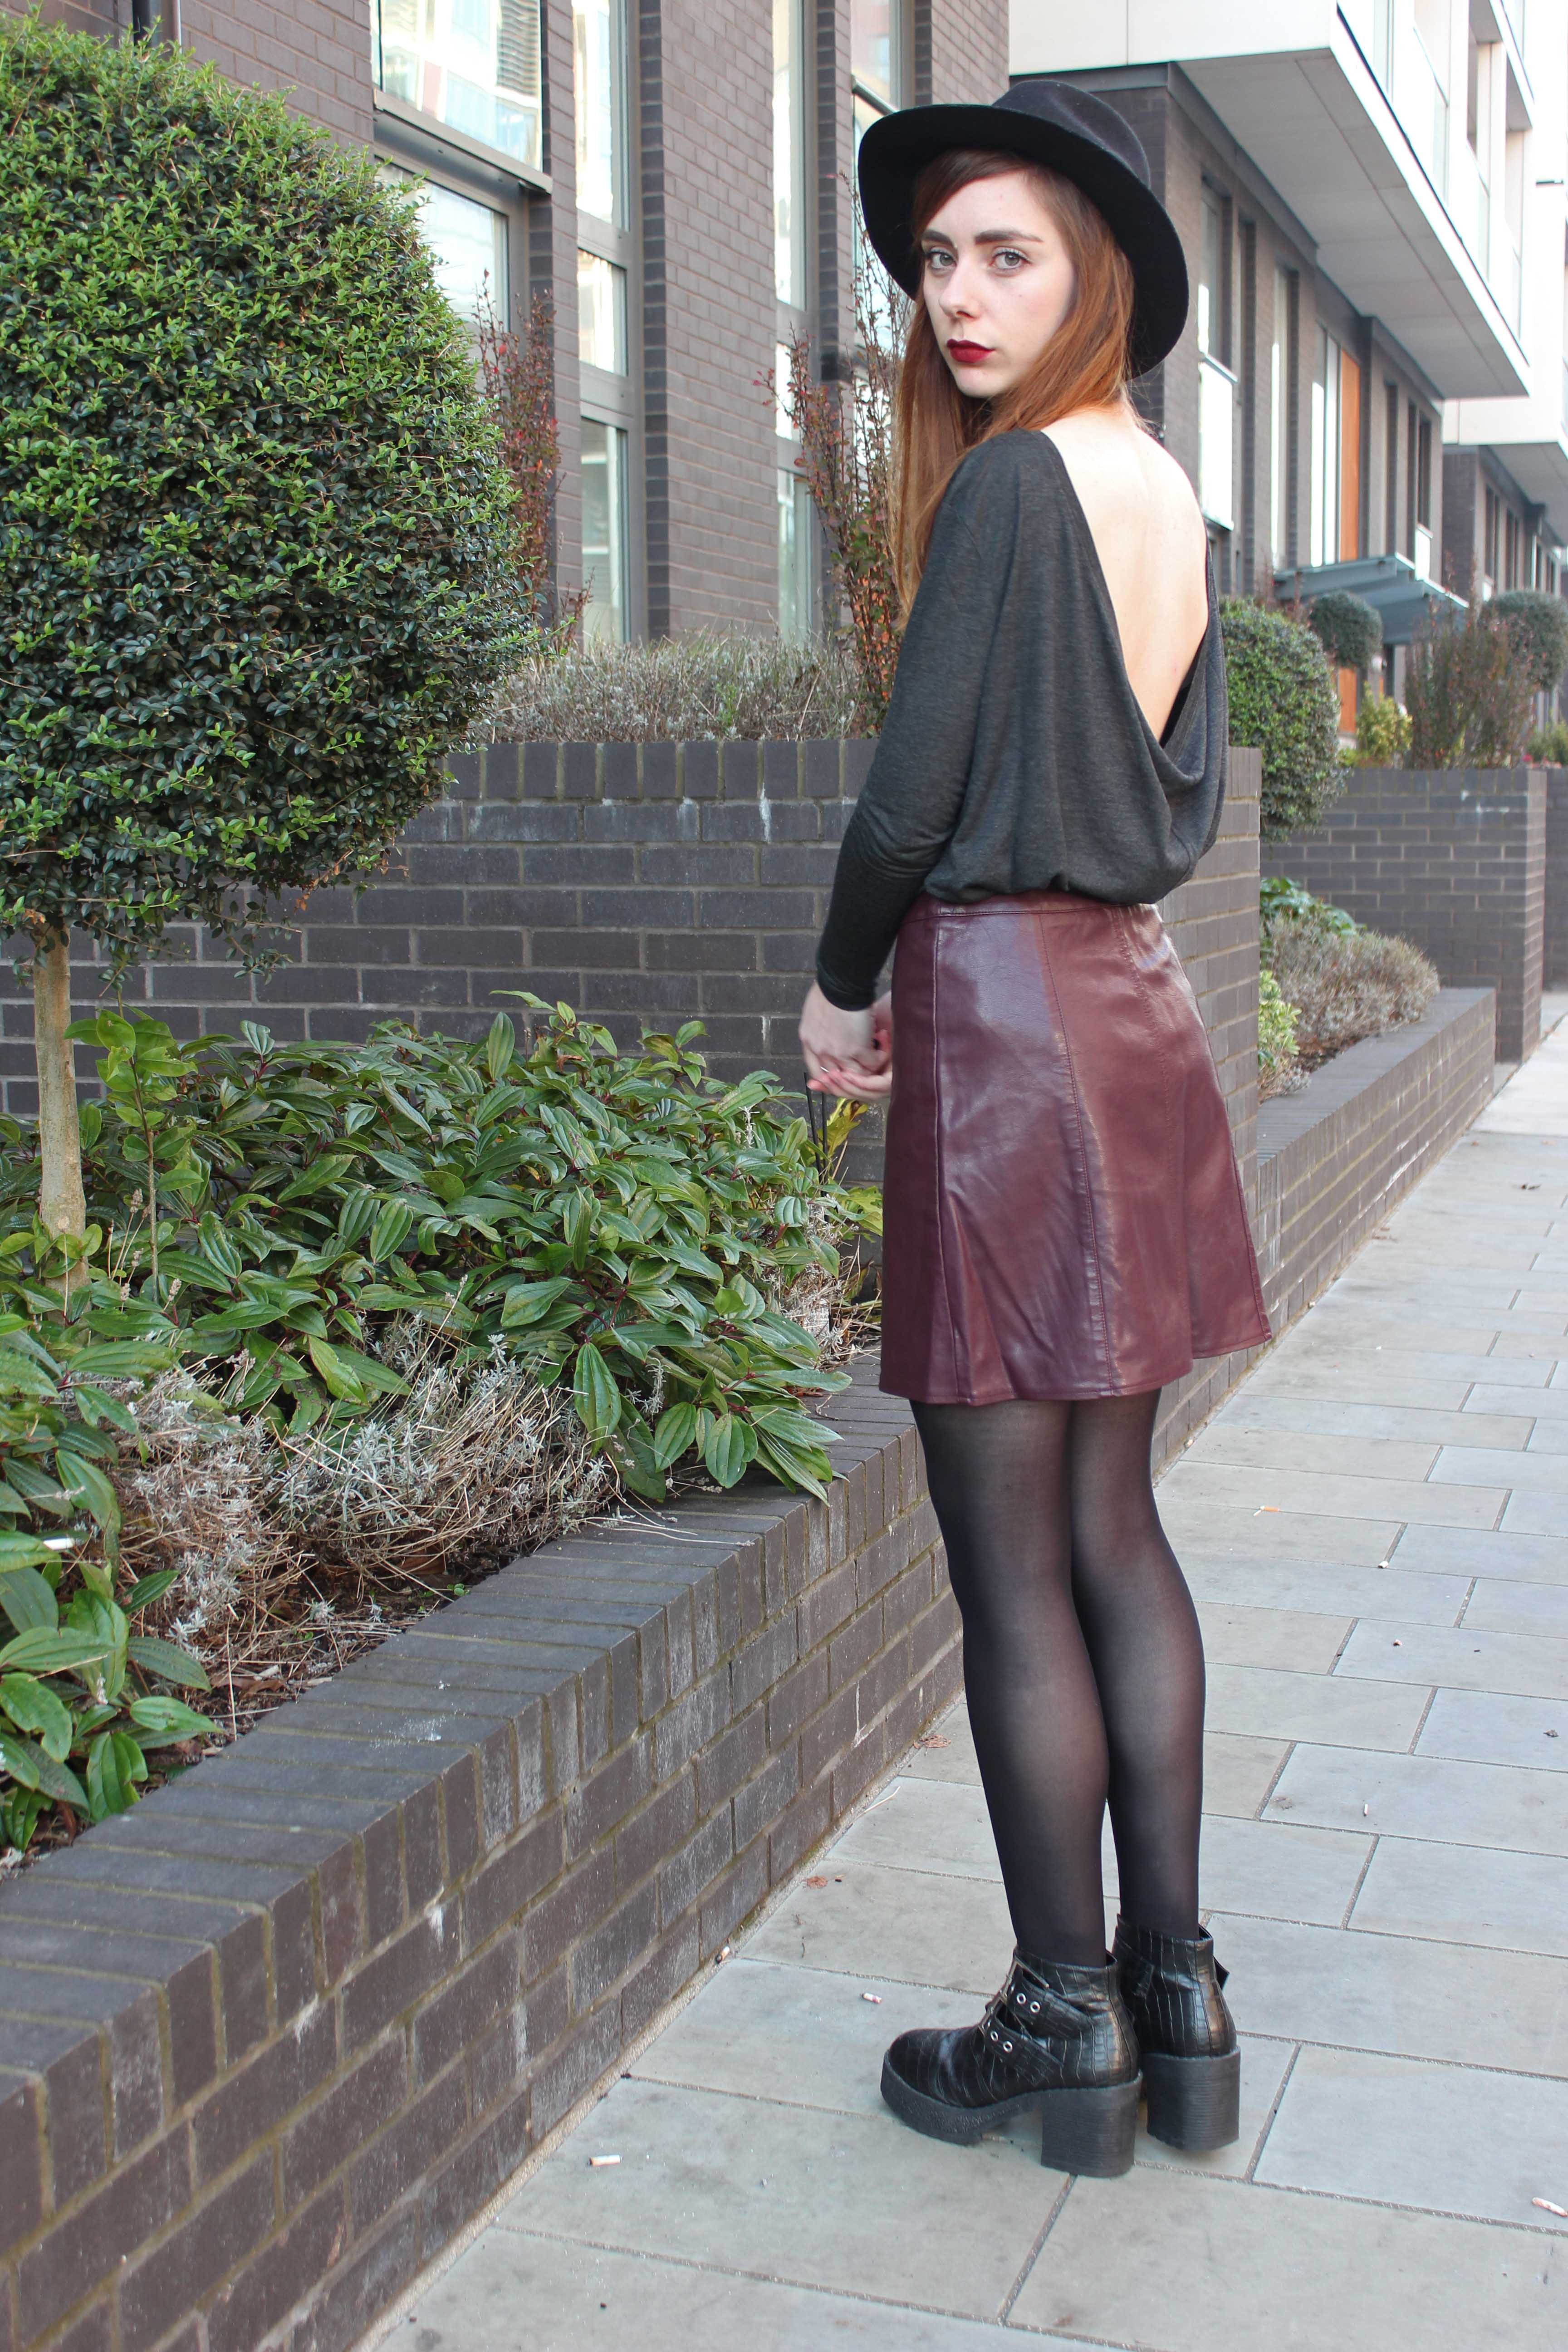 Outfit featuring a scoop back top, leather look skirt and a fedora